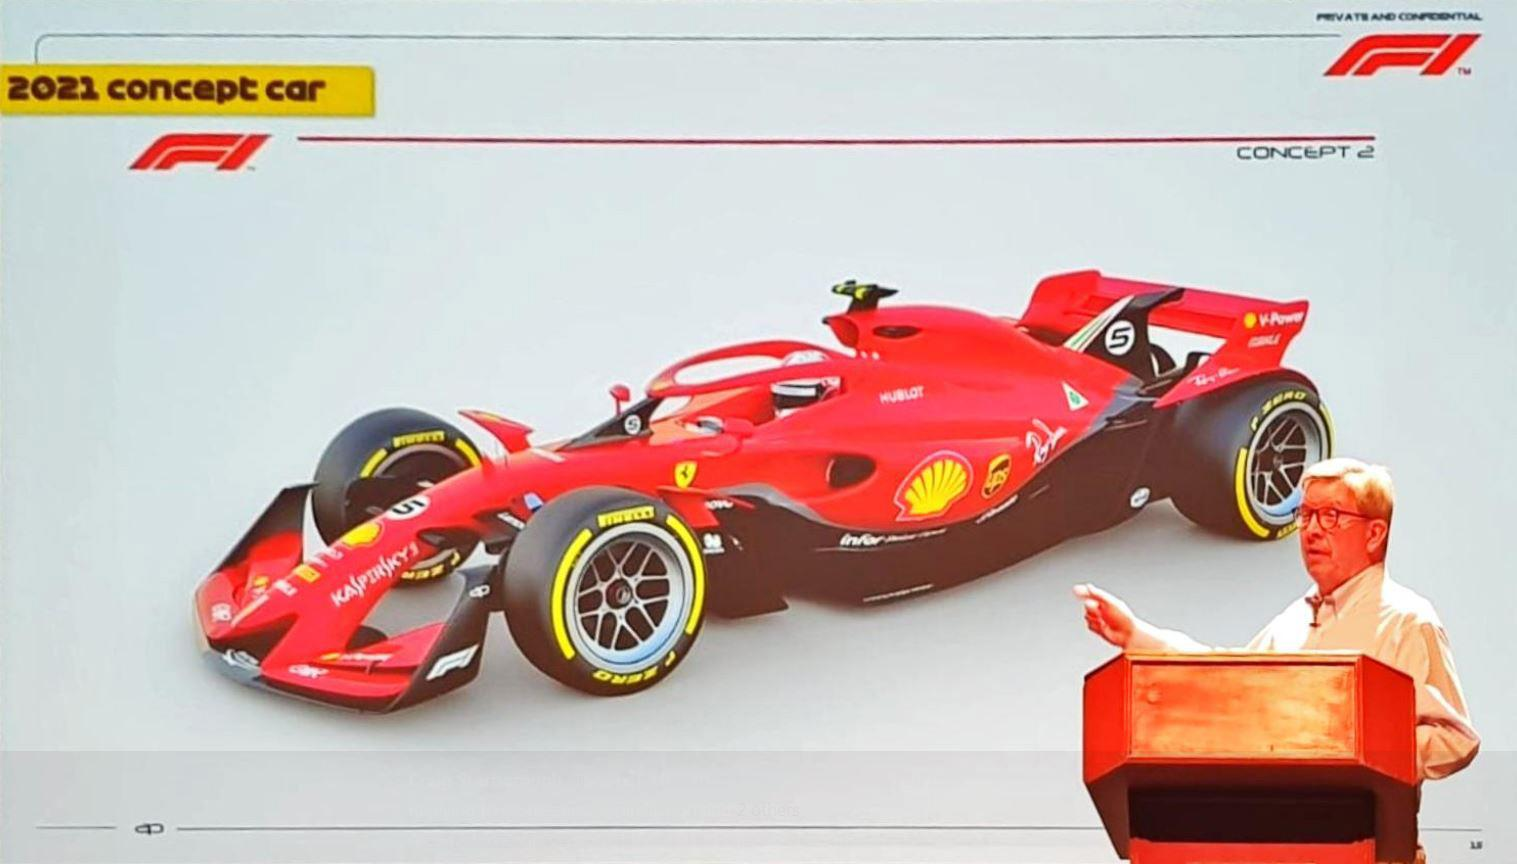 The concept F1 car for the 2021 season complete with bigger wheels and a smaller rear wing